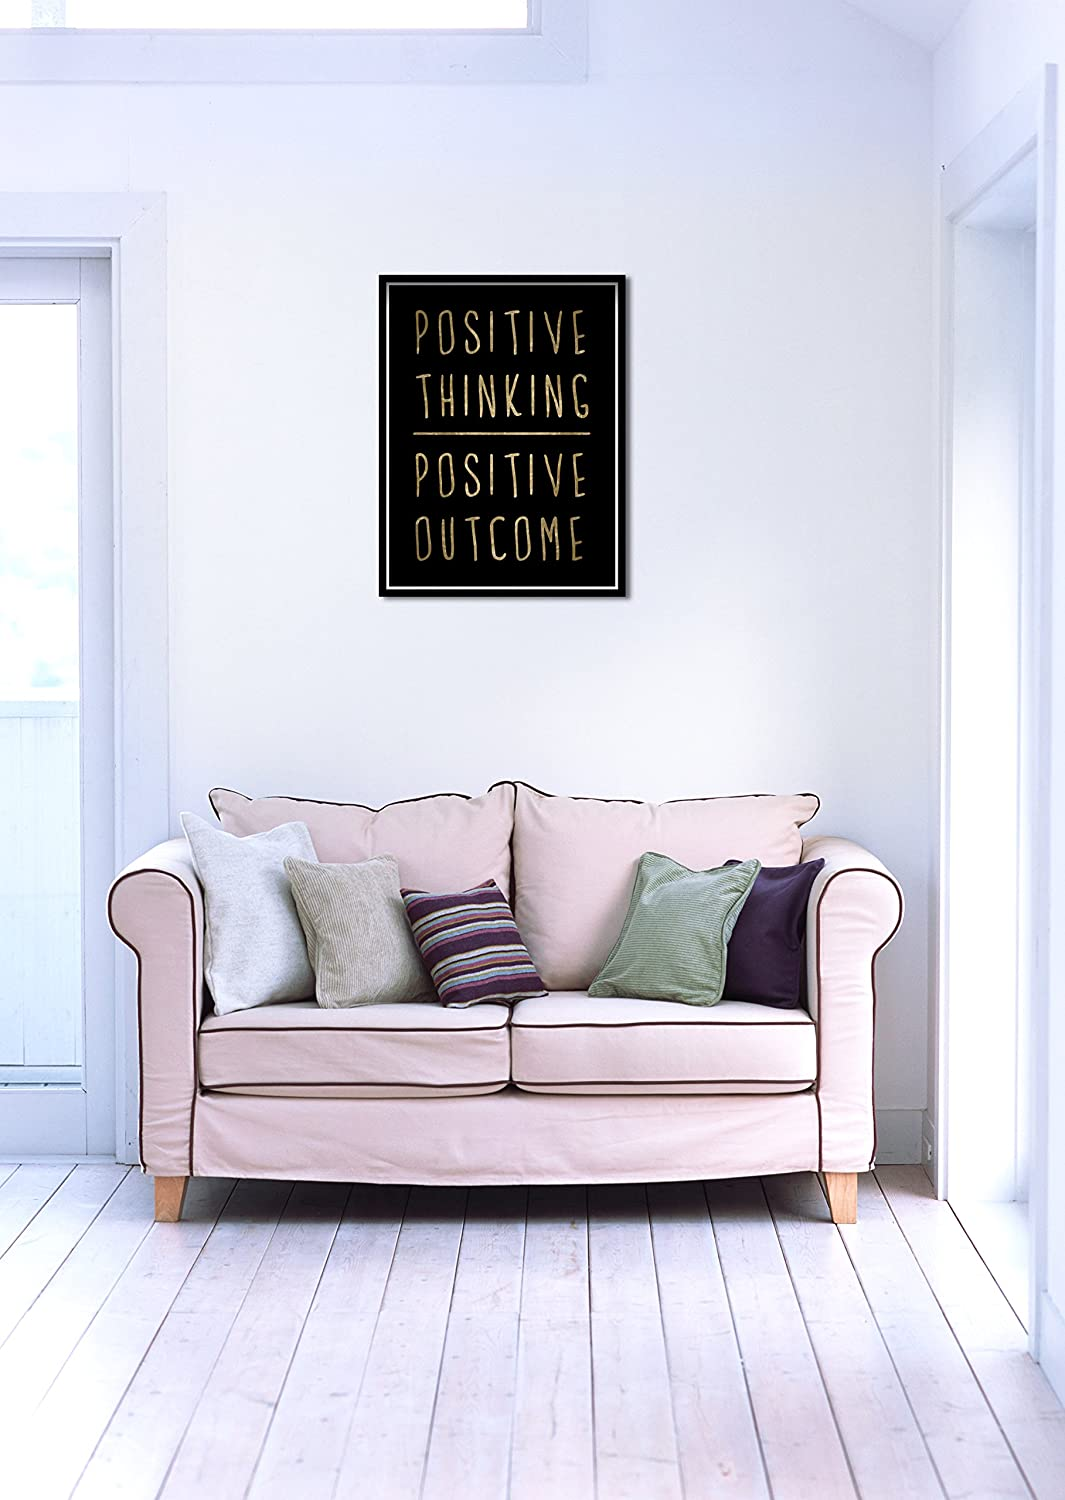 12 x 16 Oliver Gal Positive Thinking Contemporary Canvas Wall Art Print for Home Decor Black//Gold